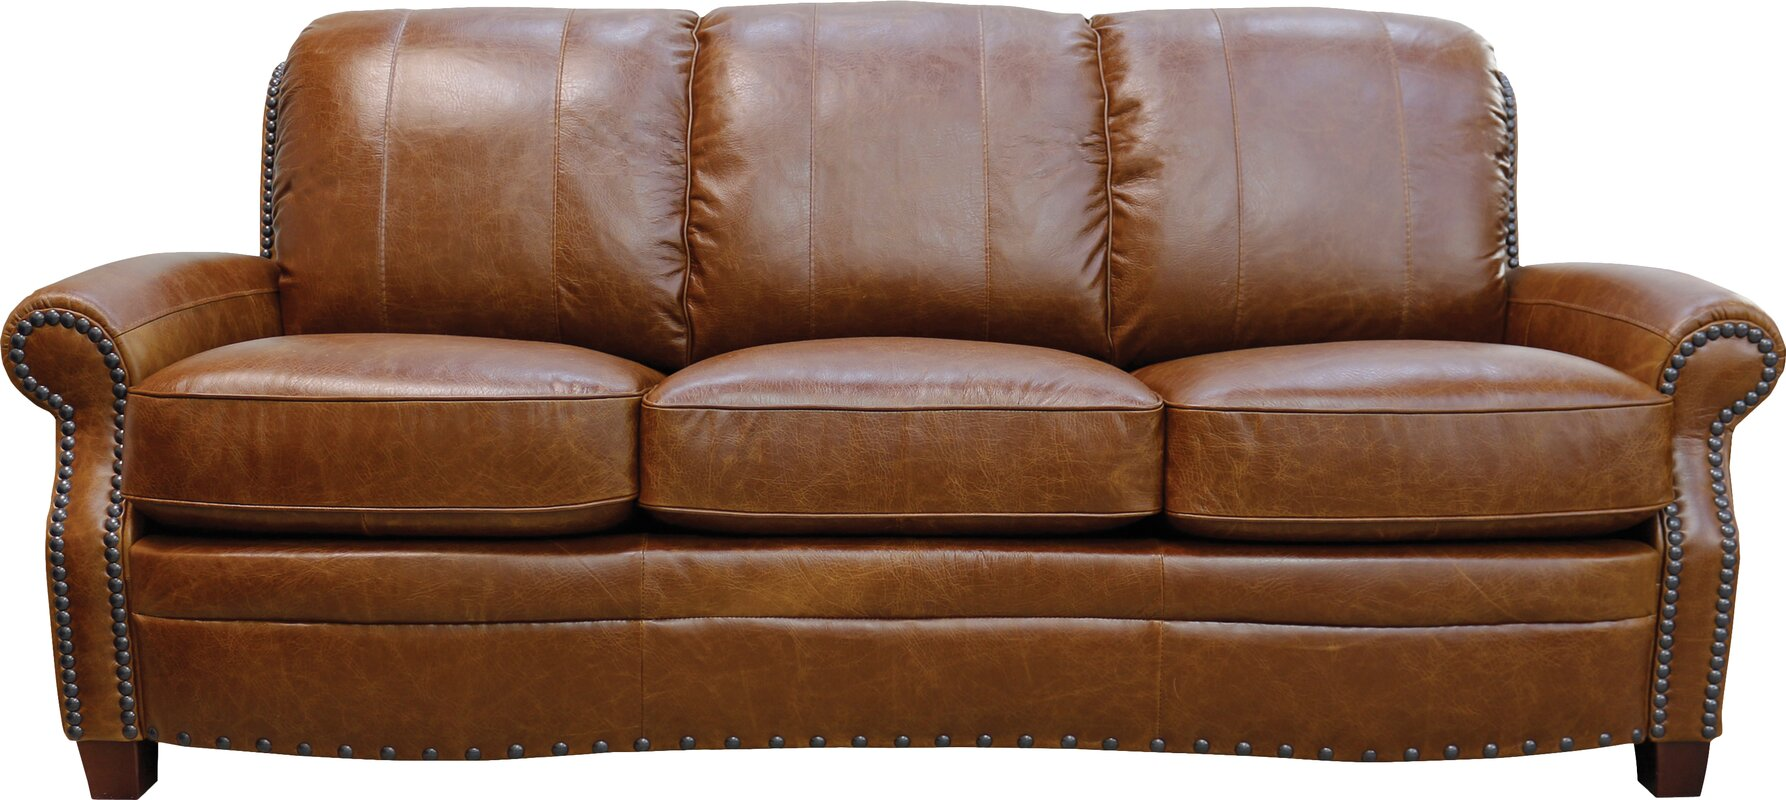 Luke Leather Ashton Leather Sofa & Reviews